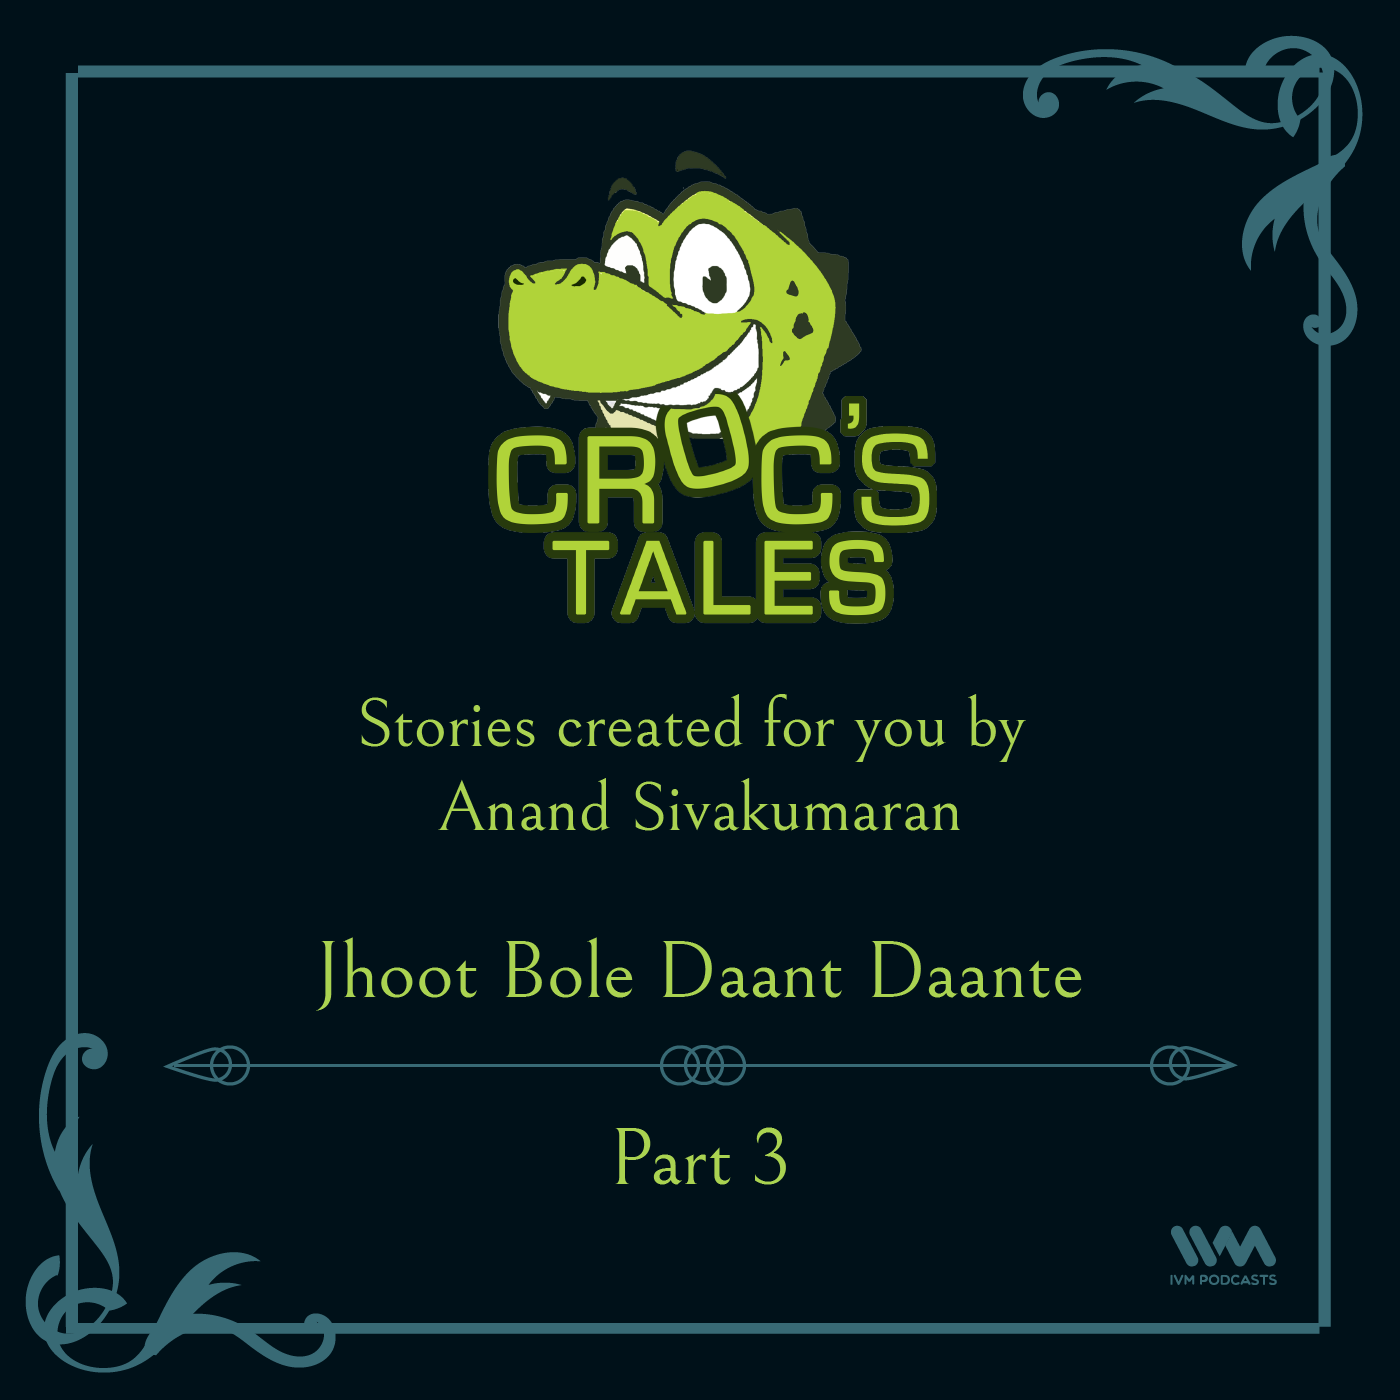 Ep. 88: Jhoot Bole Daant Daante (Part 3)